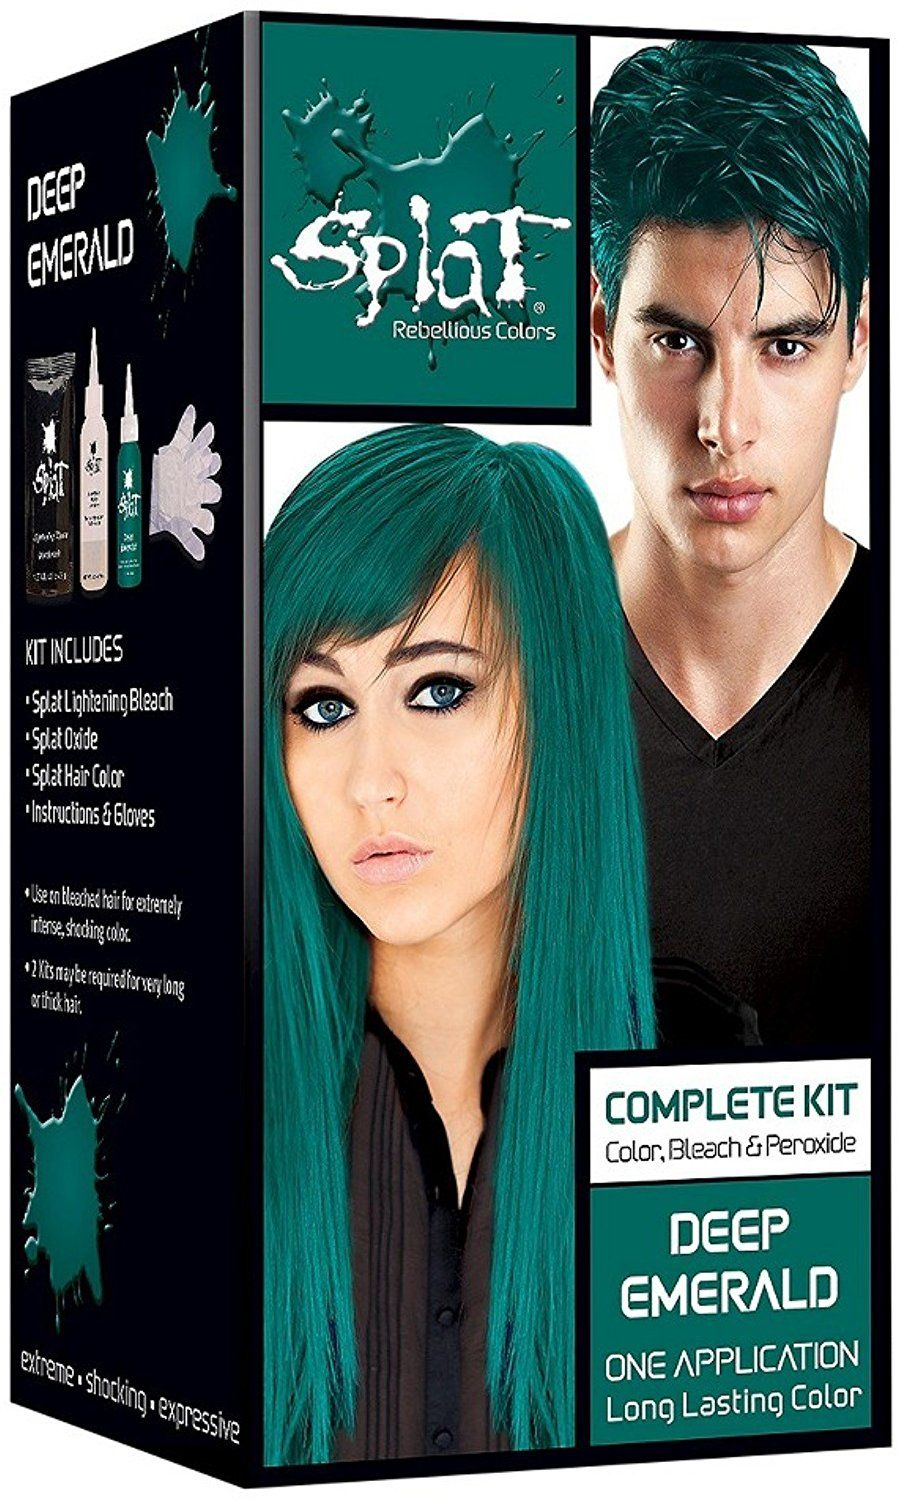 Splat Rebellious Colors Lavender Pack Of 2 Be Sure To Check Out This Awesome Product This Is An Affili Splat Hair Color Splat Hair Dye Dyed Hair Purple